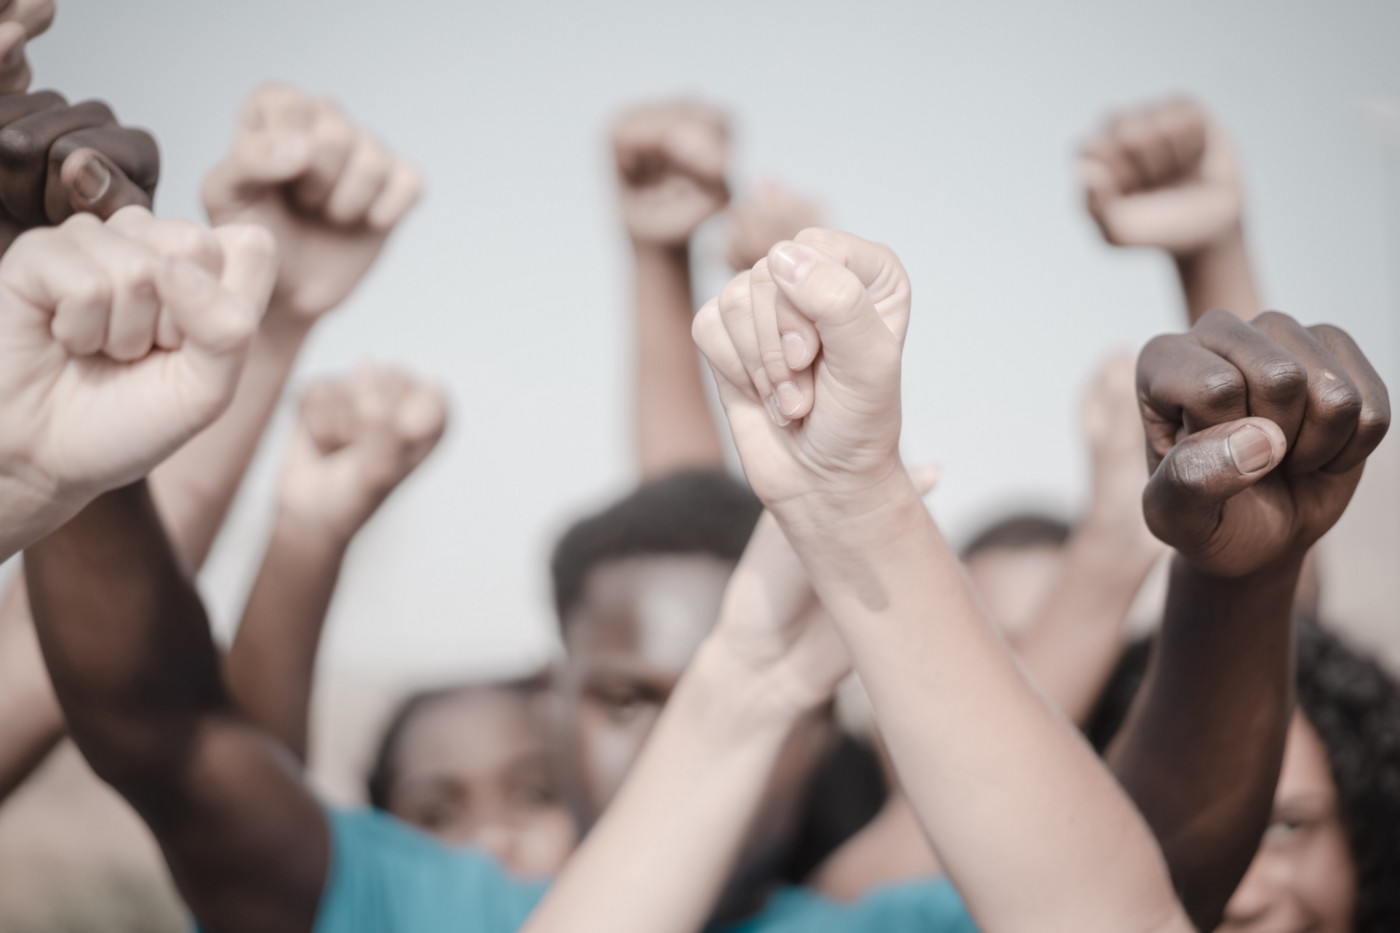 People of different races raising their fists.